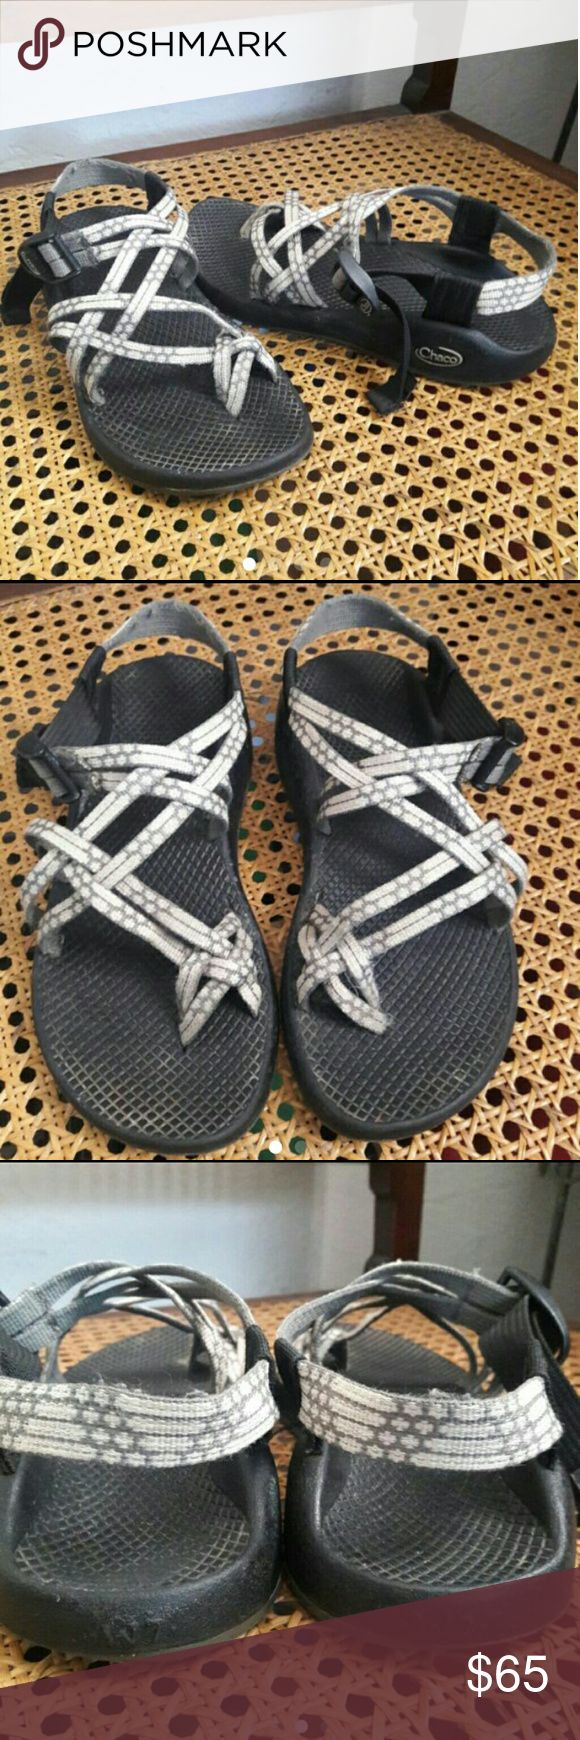 Chacos sandals In good used conditions still has Tons and tons of life left in them!.  Toe loop Chaco sandals very cute!   Checkout my listings for more awesome stuff! ? Chacos Shoes Sandals